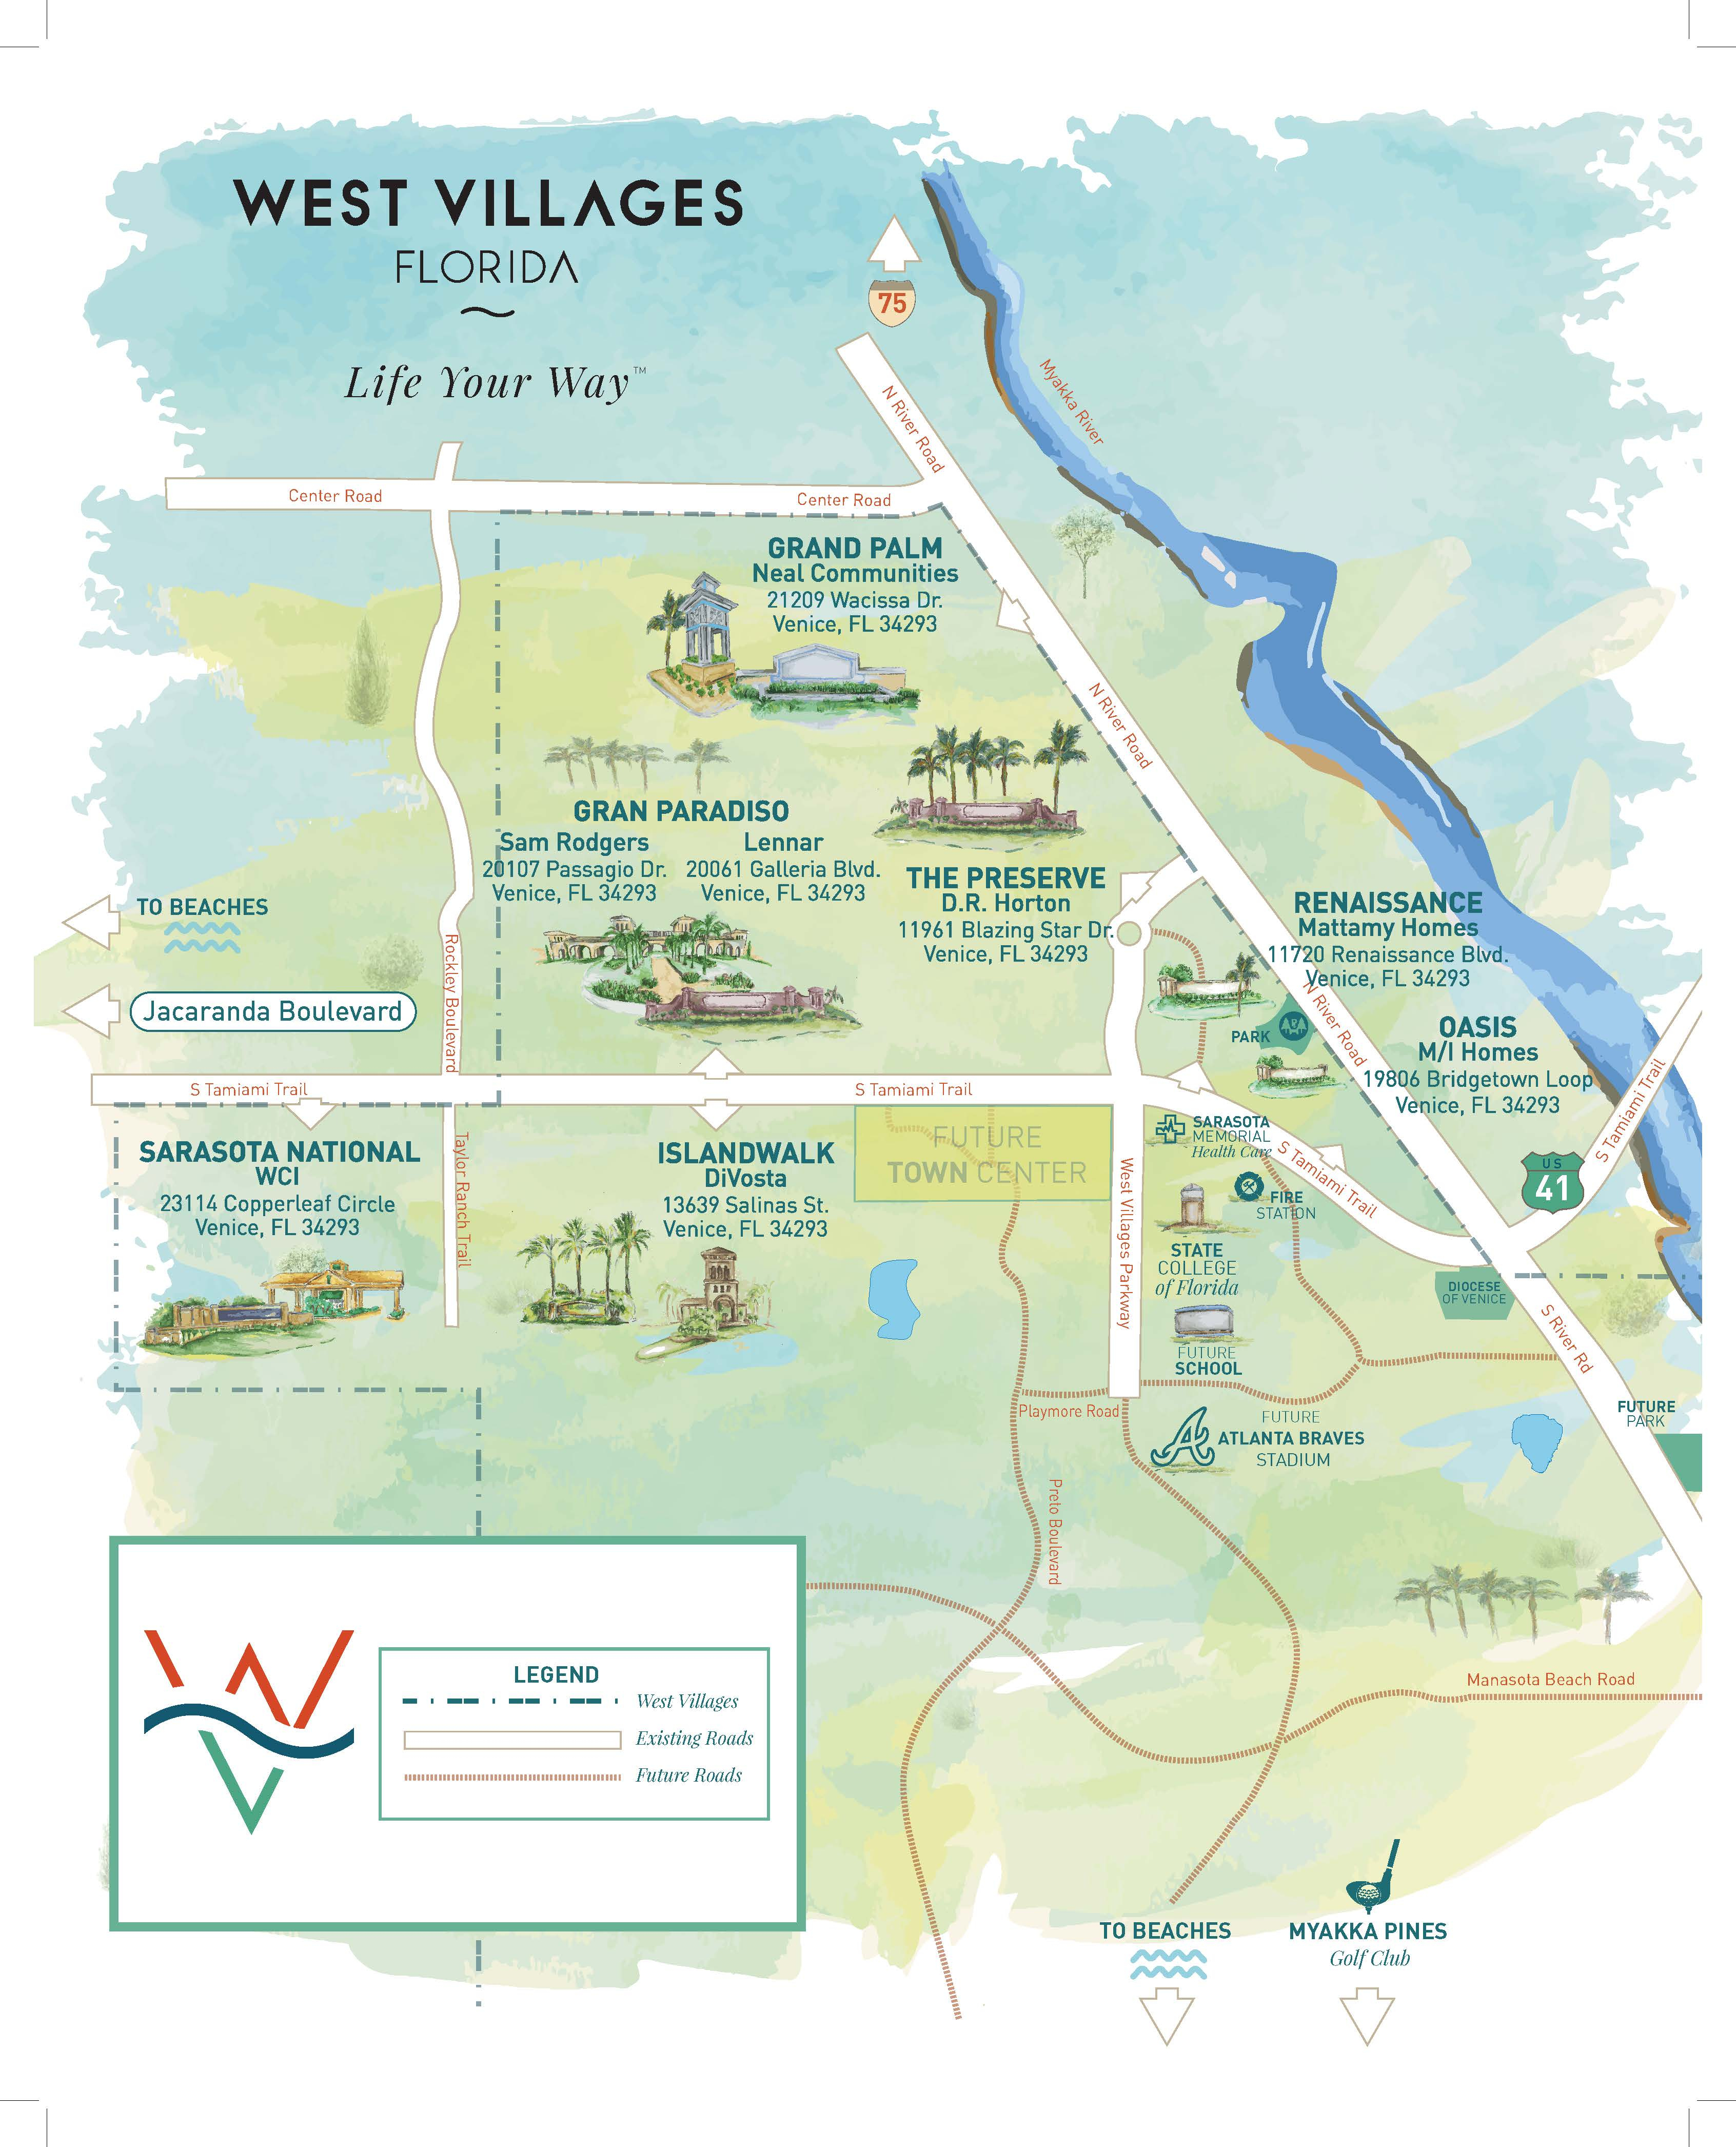 Press Releases - New Homes Sarasota, Home Builder Sarasota - Where Is Northport Florida On The Map